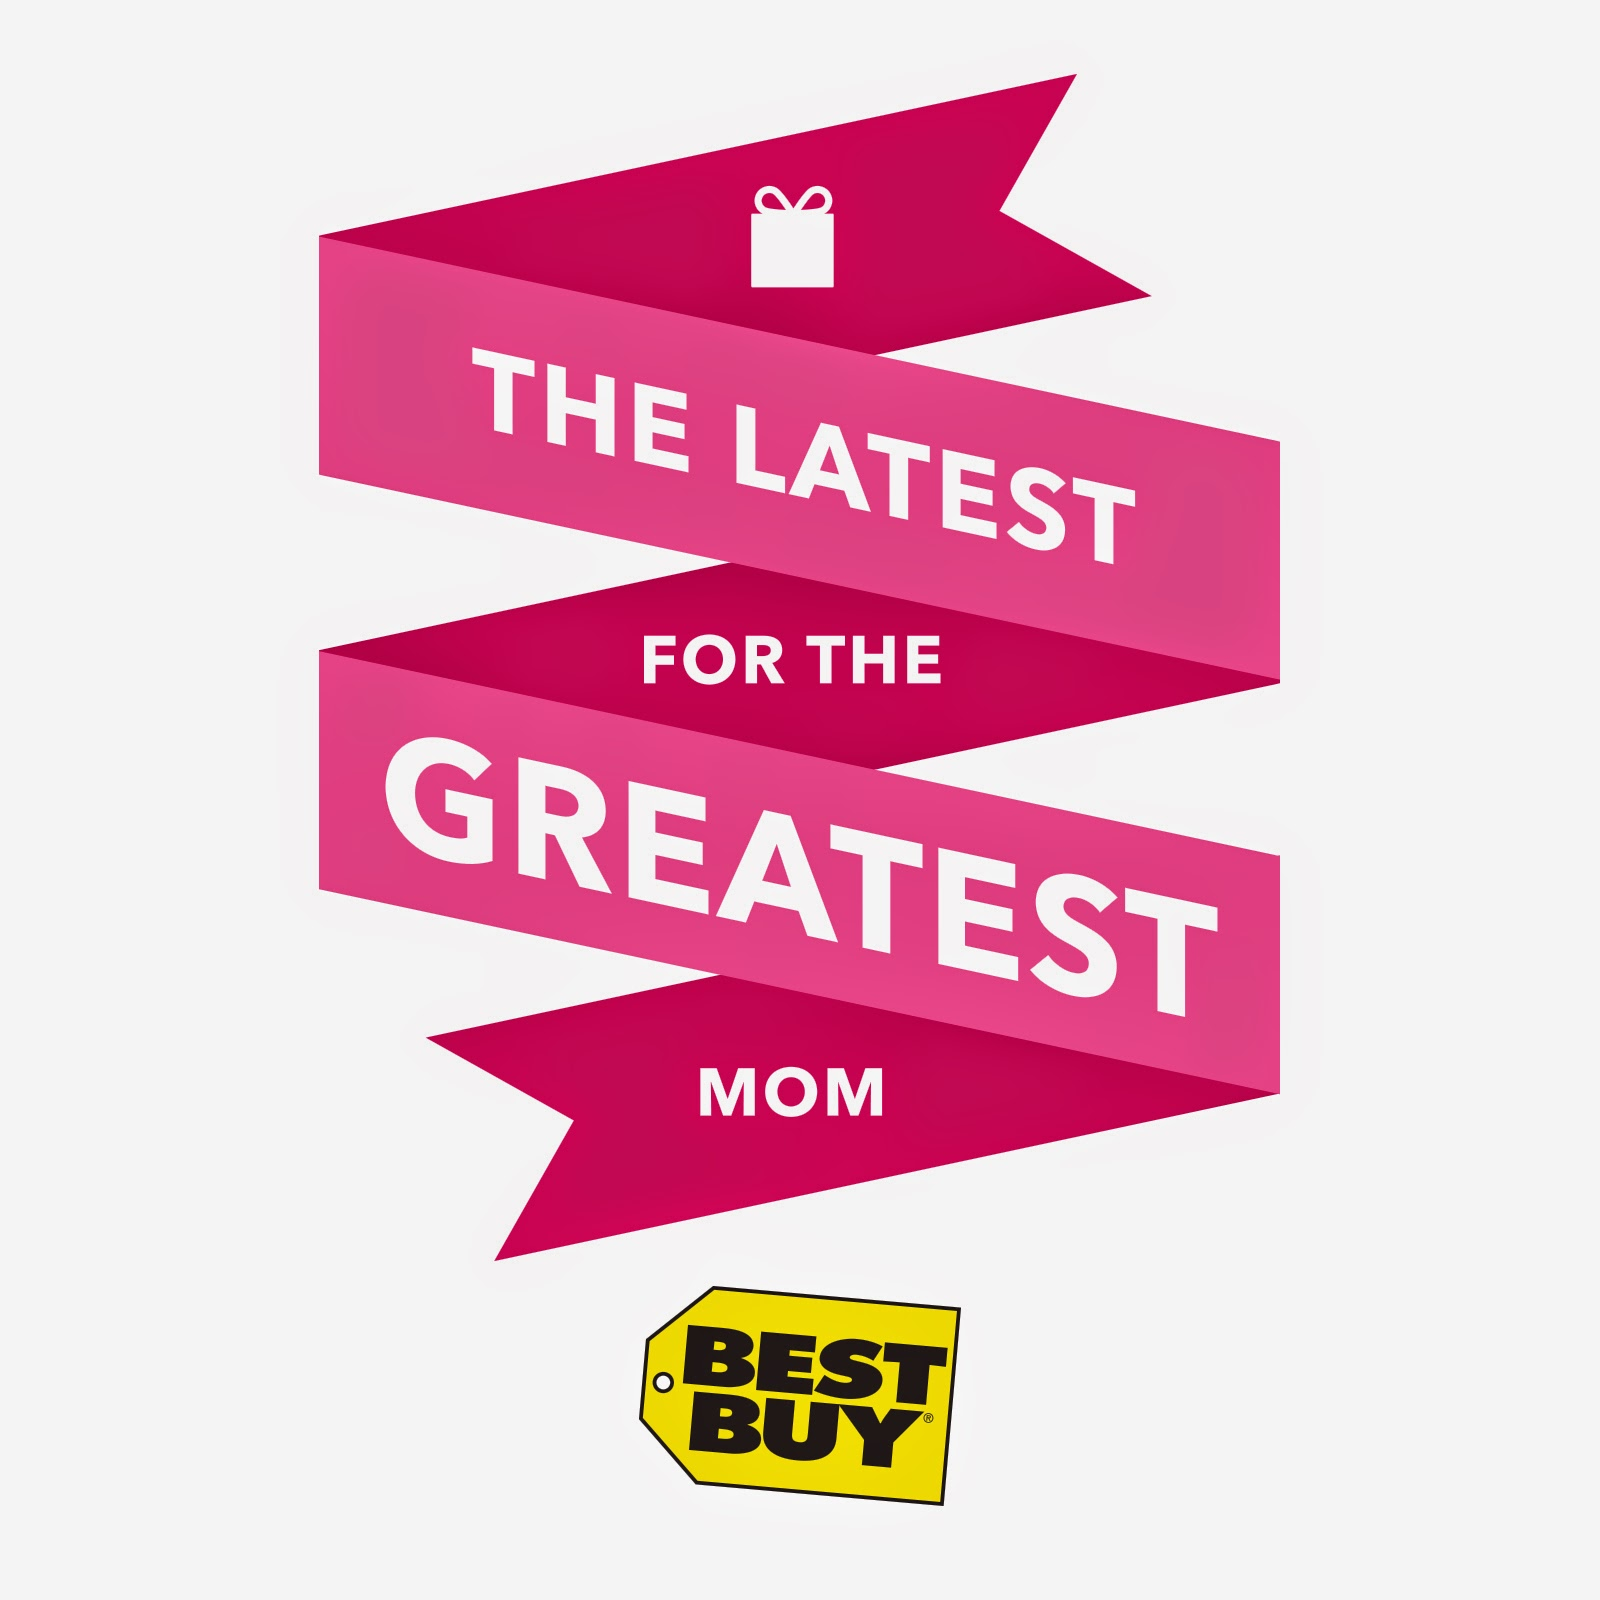 The Latest for the Greatest Mom